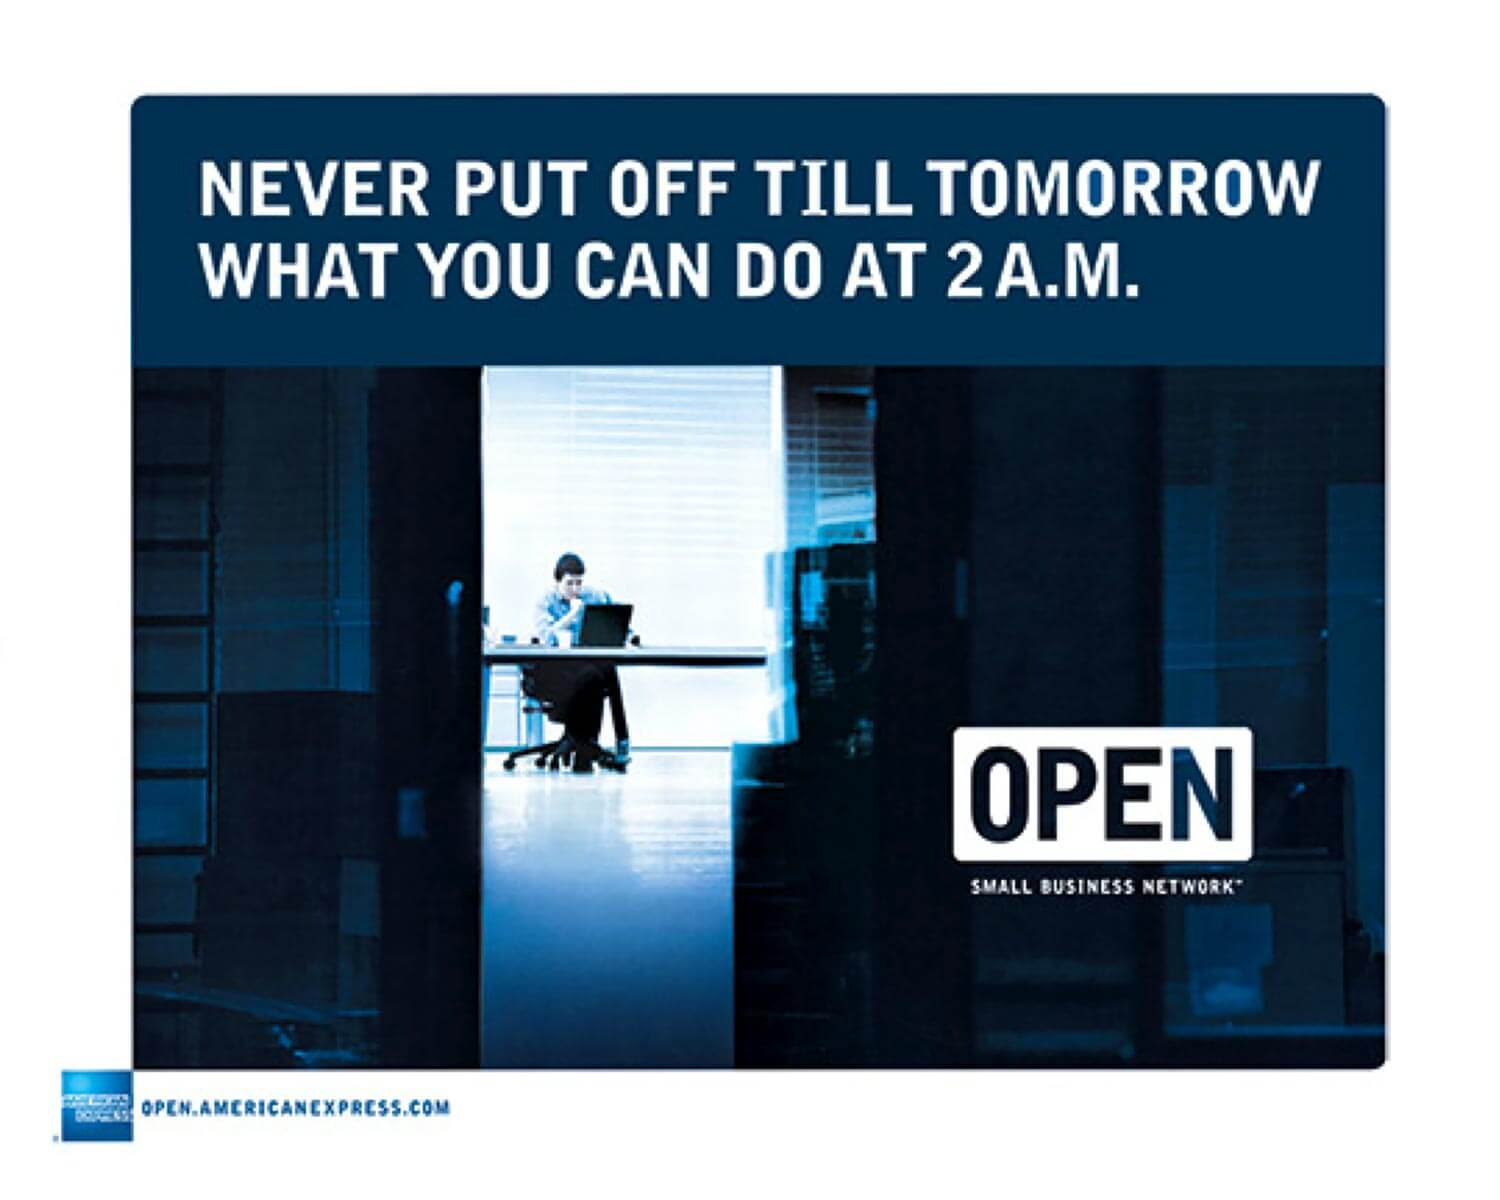 American Express. Open. Small Business Network.